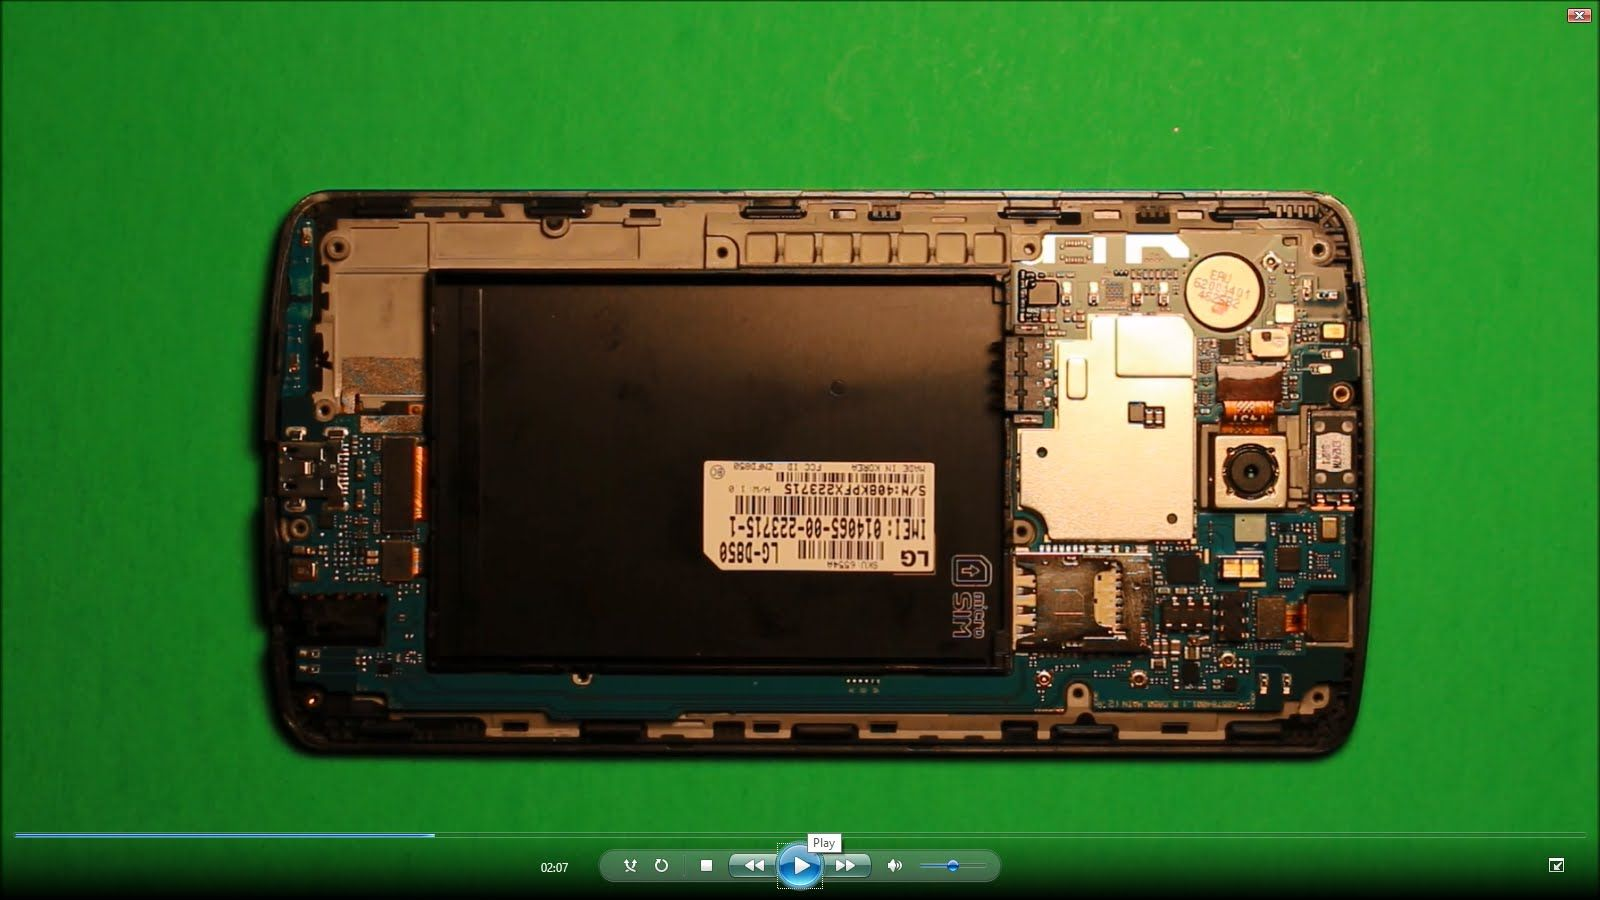 LG G3 LCD Screen Replacement DIY #LGG3 #PhoneRepair #DIY